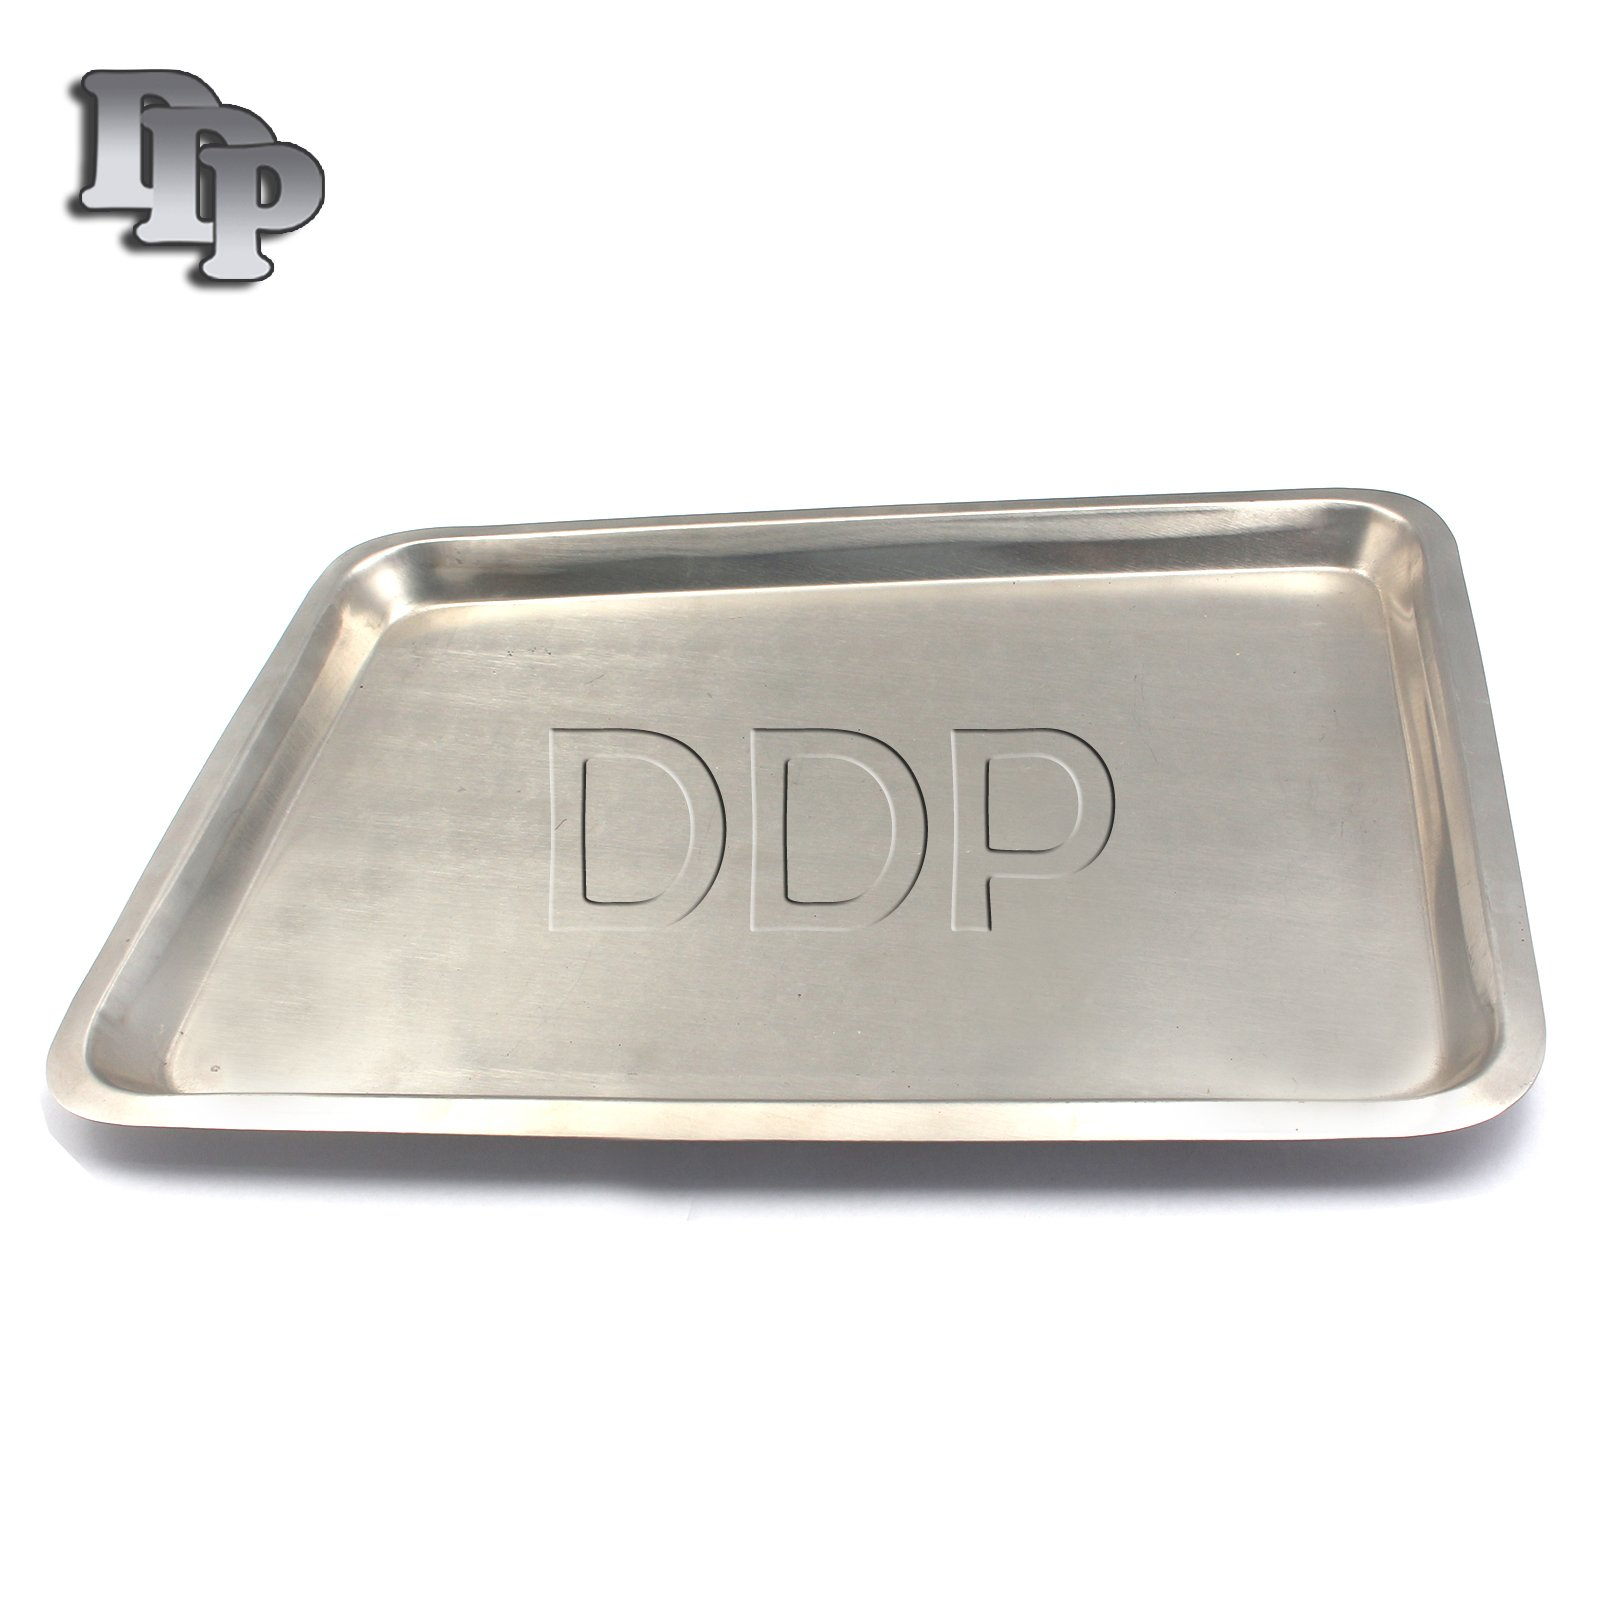 DDP INSTRUMENT TRAY FLAT STAINLESS STEEL 15'' X 10.5'' MEDIC, BODY PIERCING, SERVING